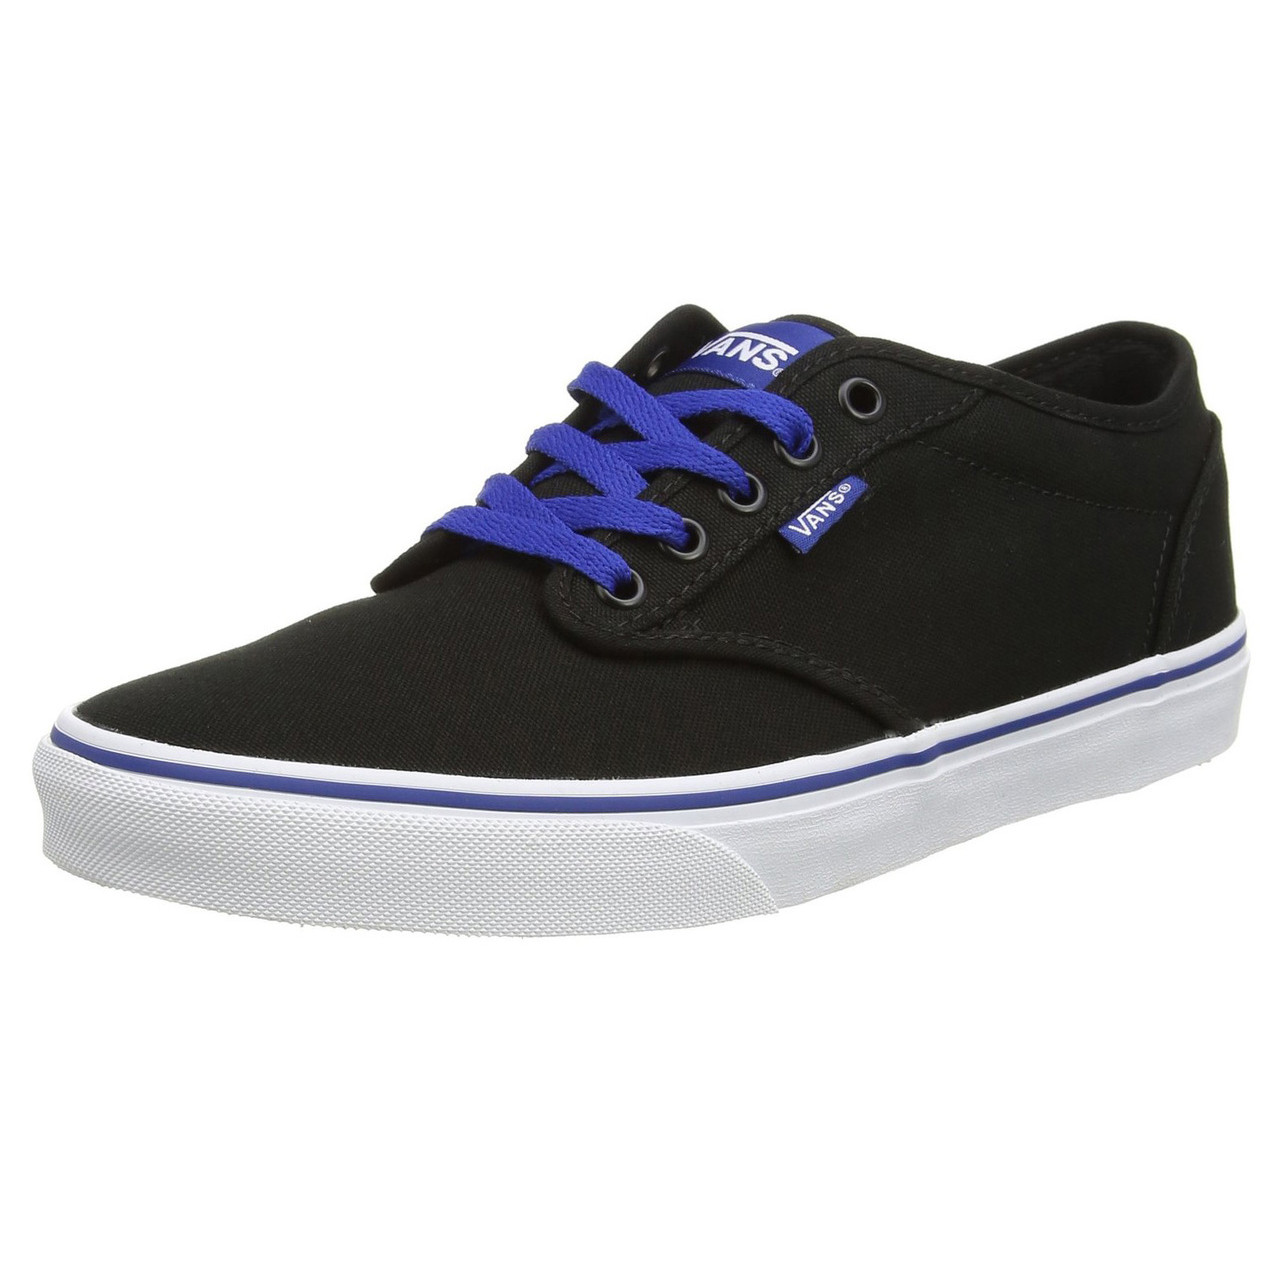 154786096d VANS Atwood Canvas Varsity Trainers Black Blue. Double tap to zoom